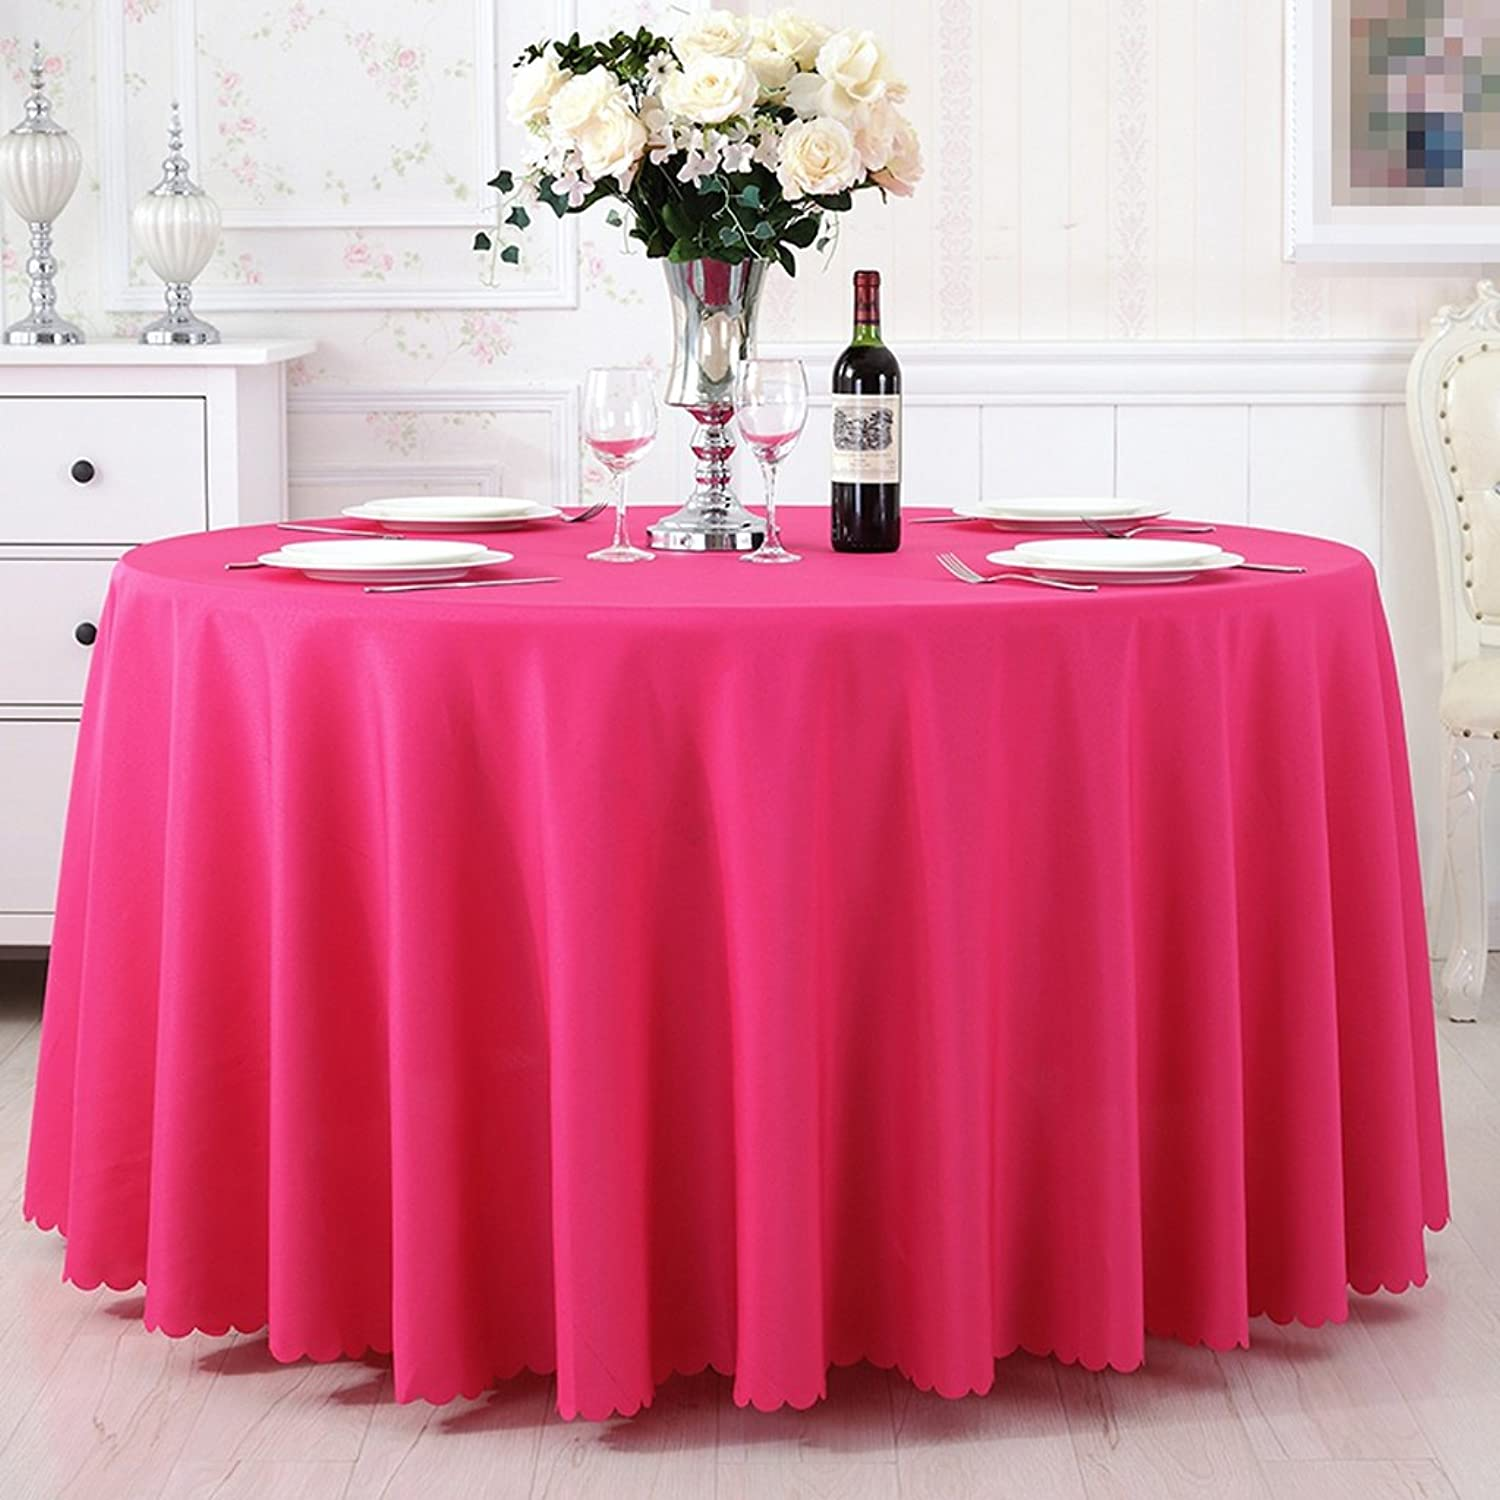 L&Y Hotel Tablecloths Conference Tablecloth Thick Chemical Fiber Material Tablecloth Round Diameter Tablecloth Table Cloth Tablecloths Table Cover (color   PINK, Size   320CM)